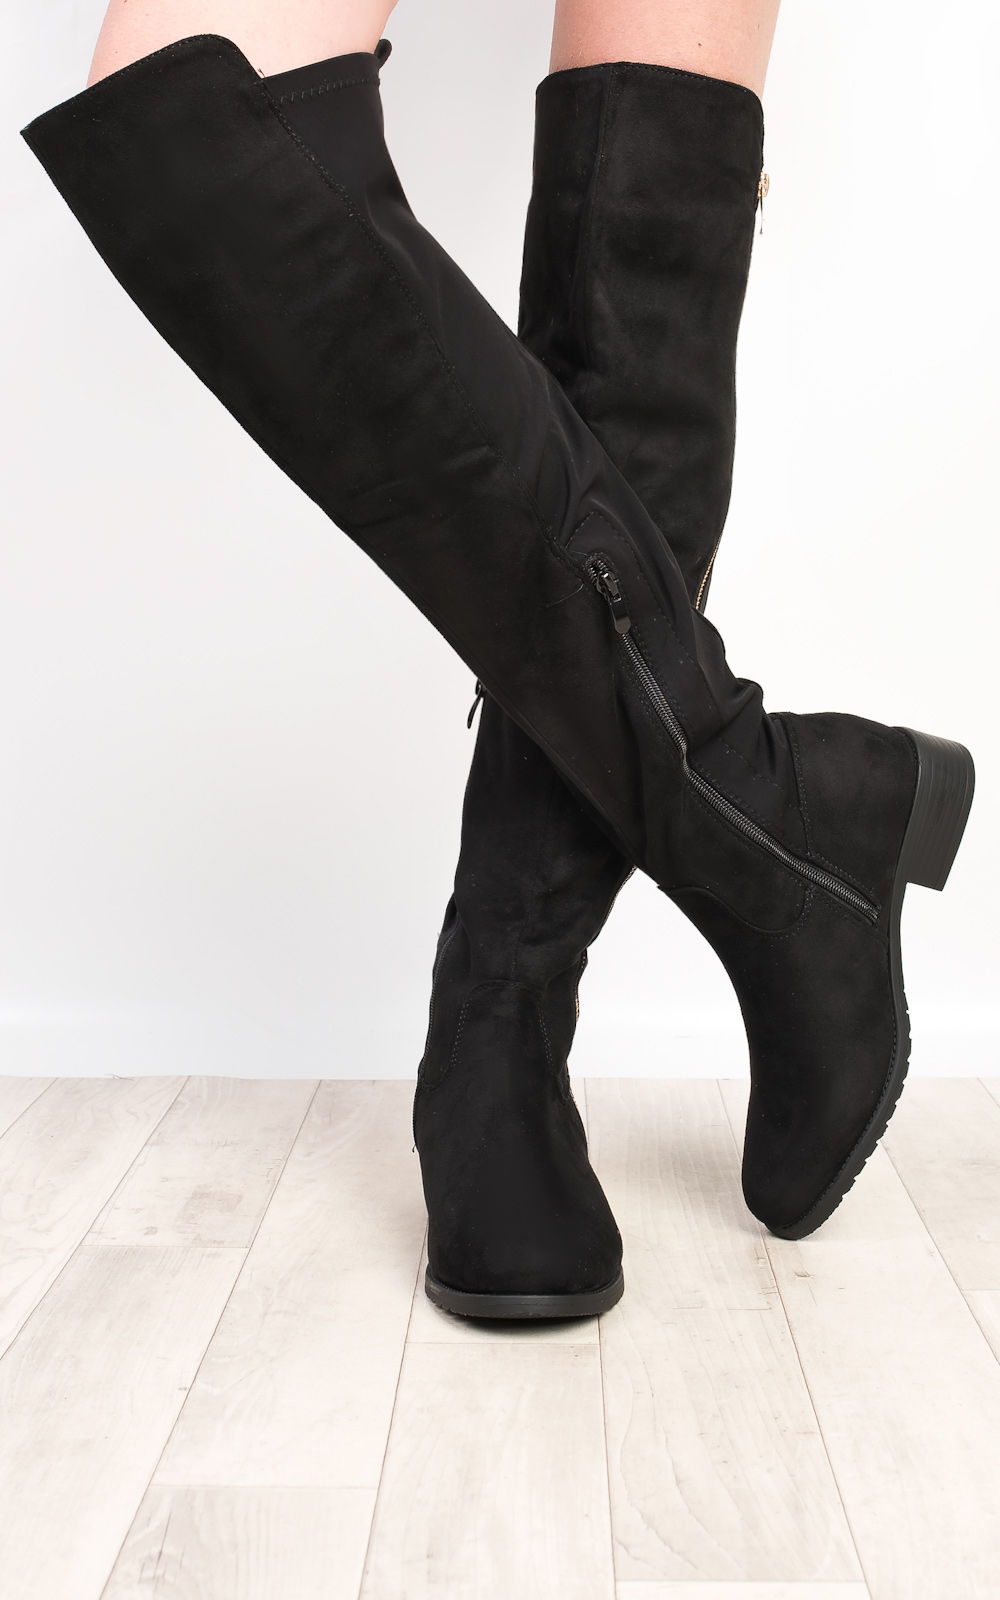 IKRUSH Womens Chelsie Faux Suede Knee High Flat Boots